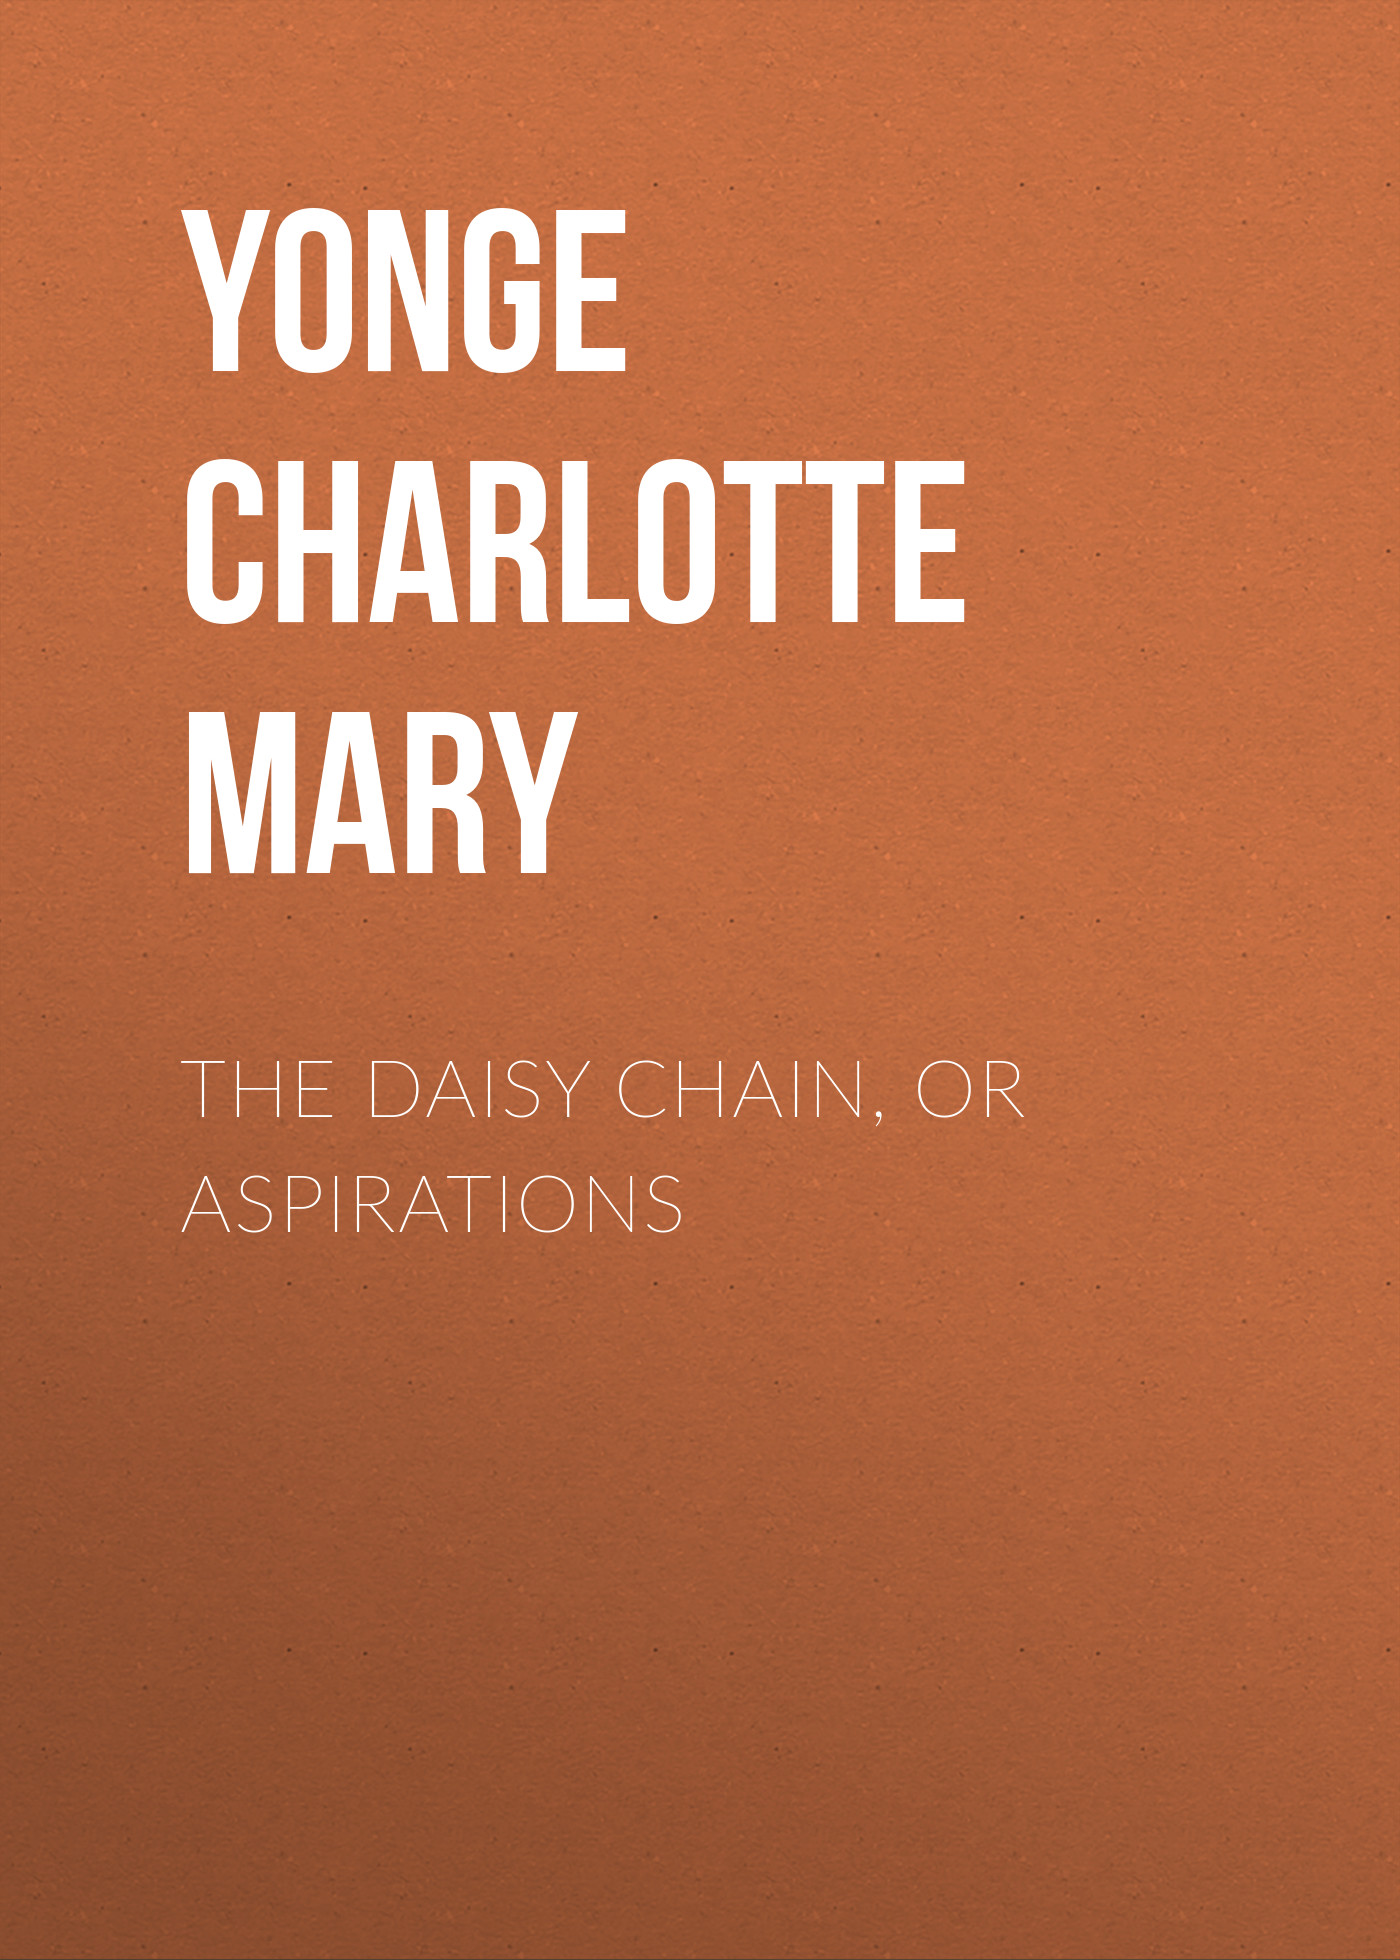 Yonge Charlotte Mary The Daisy Chain, or Aspirations yonge charlotte mary countess kate